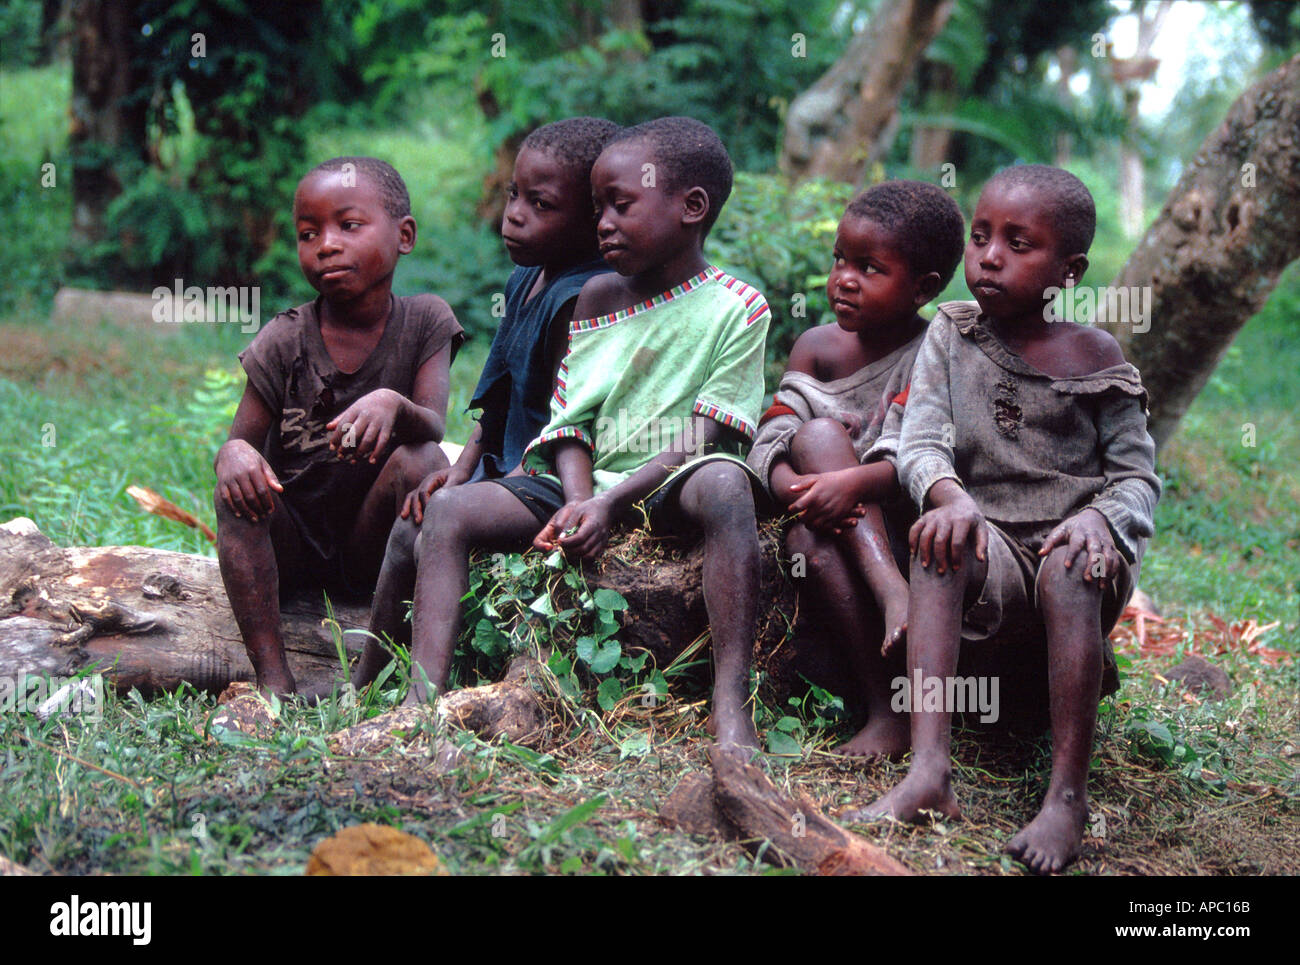 Children D R Congo Zaire Central Africa - Stock Image